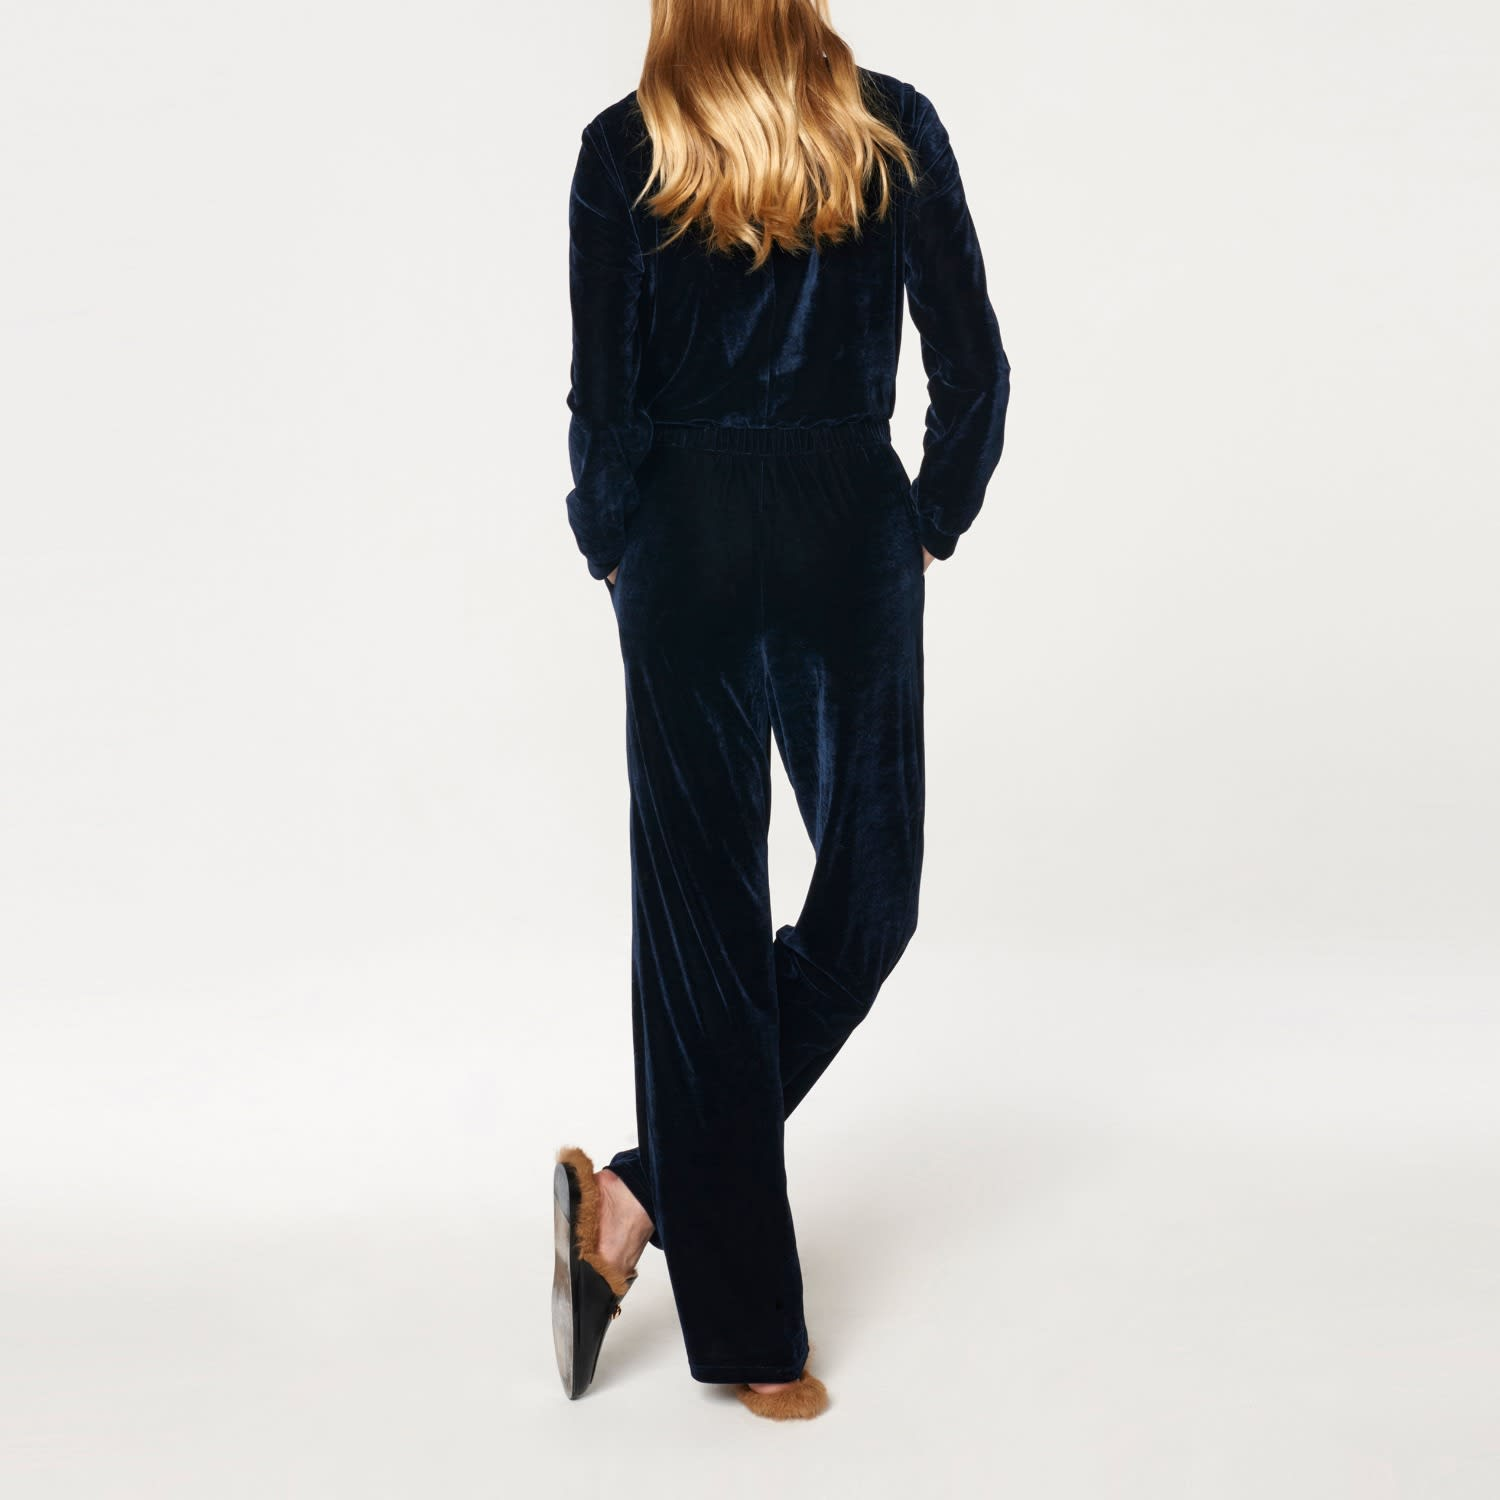 Velvet Jumpsuit With Wrap Front Elastic Waistband In Navy Paisie Wolf Badger